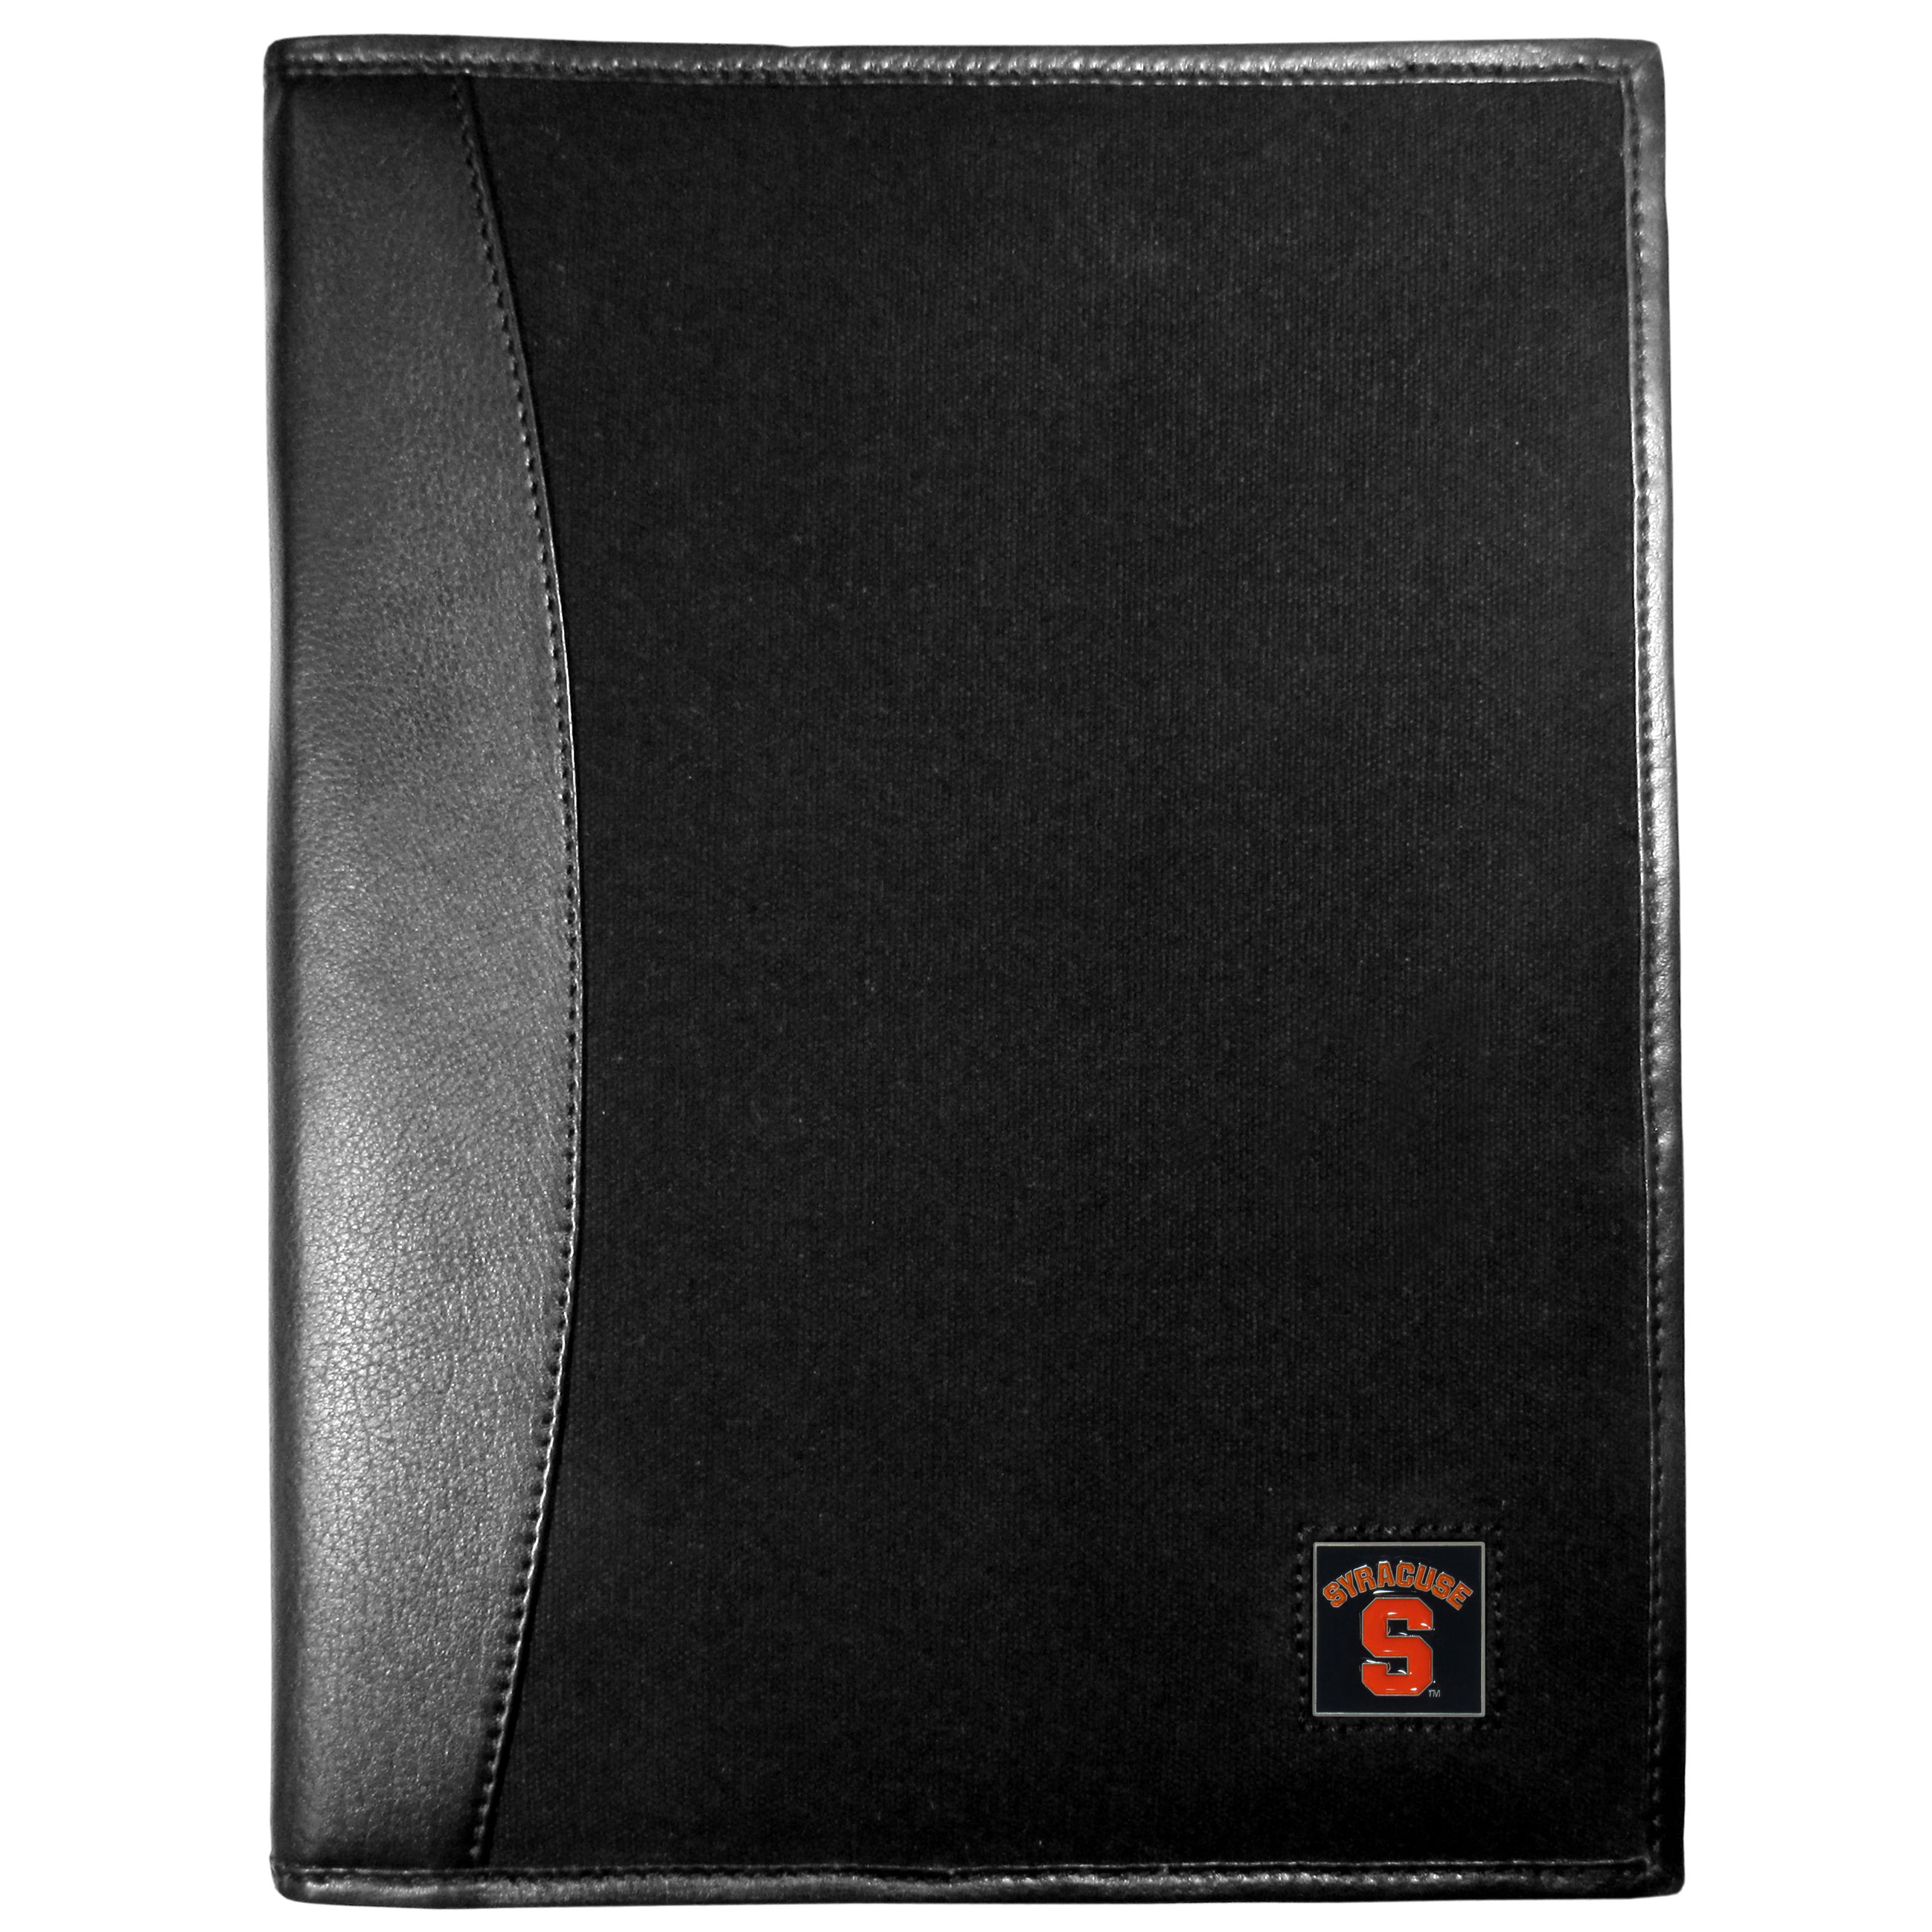 Syracuse Orange Leather and Canvas Padfolio - Our leather and canvas padfolio perfectly blends form and function. The attractive portfolio is bound in fine grain leather with an attractive canvas finish and the interior is a soft nylon. This high quality business accessory also features a fully cast metal Syracuse Orange emblem that is subtly set in the corner of the organizer. It is packed with features like 6 card slots for badges, business cards, hotel keys or credit cards and ID with a large pocket for loose papers and a writing tablet slot making it a must-have for the professional on the go.